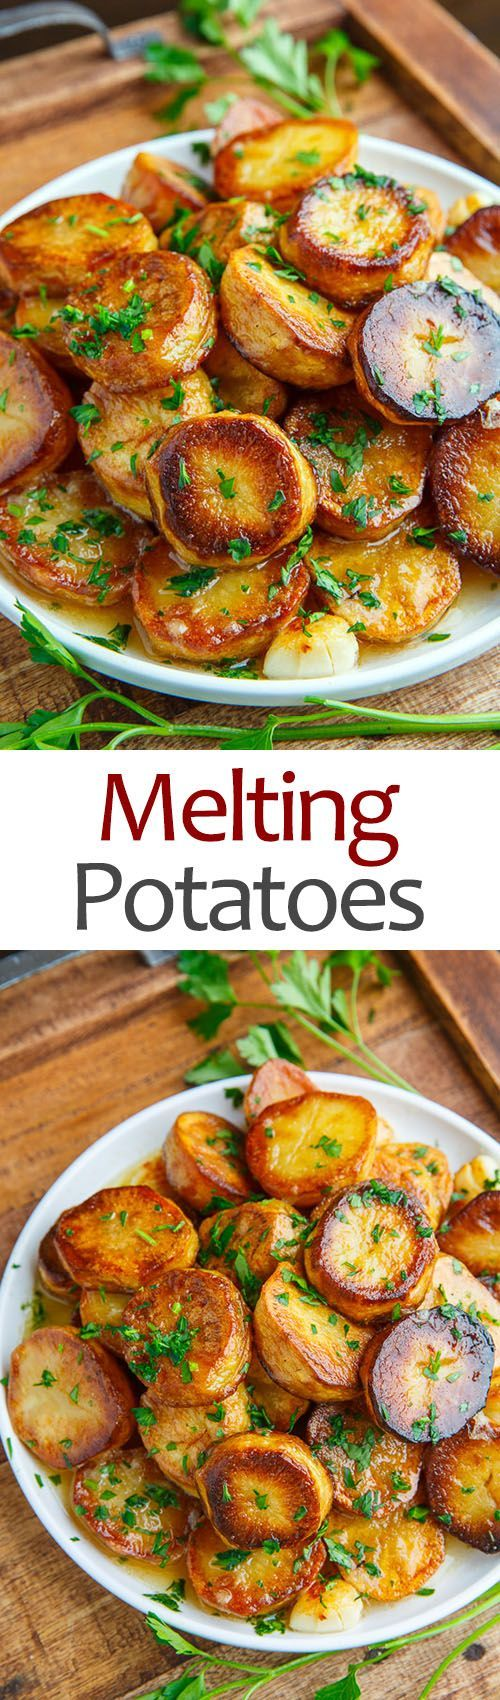 Melting Potatoes Prep Time: 10 minutes Cook Time: 35 minutes Total ...